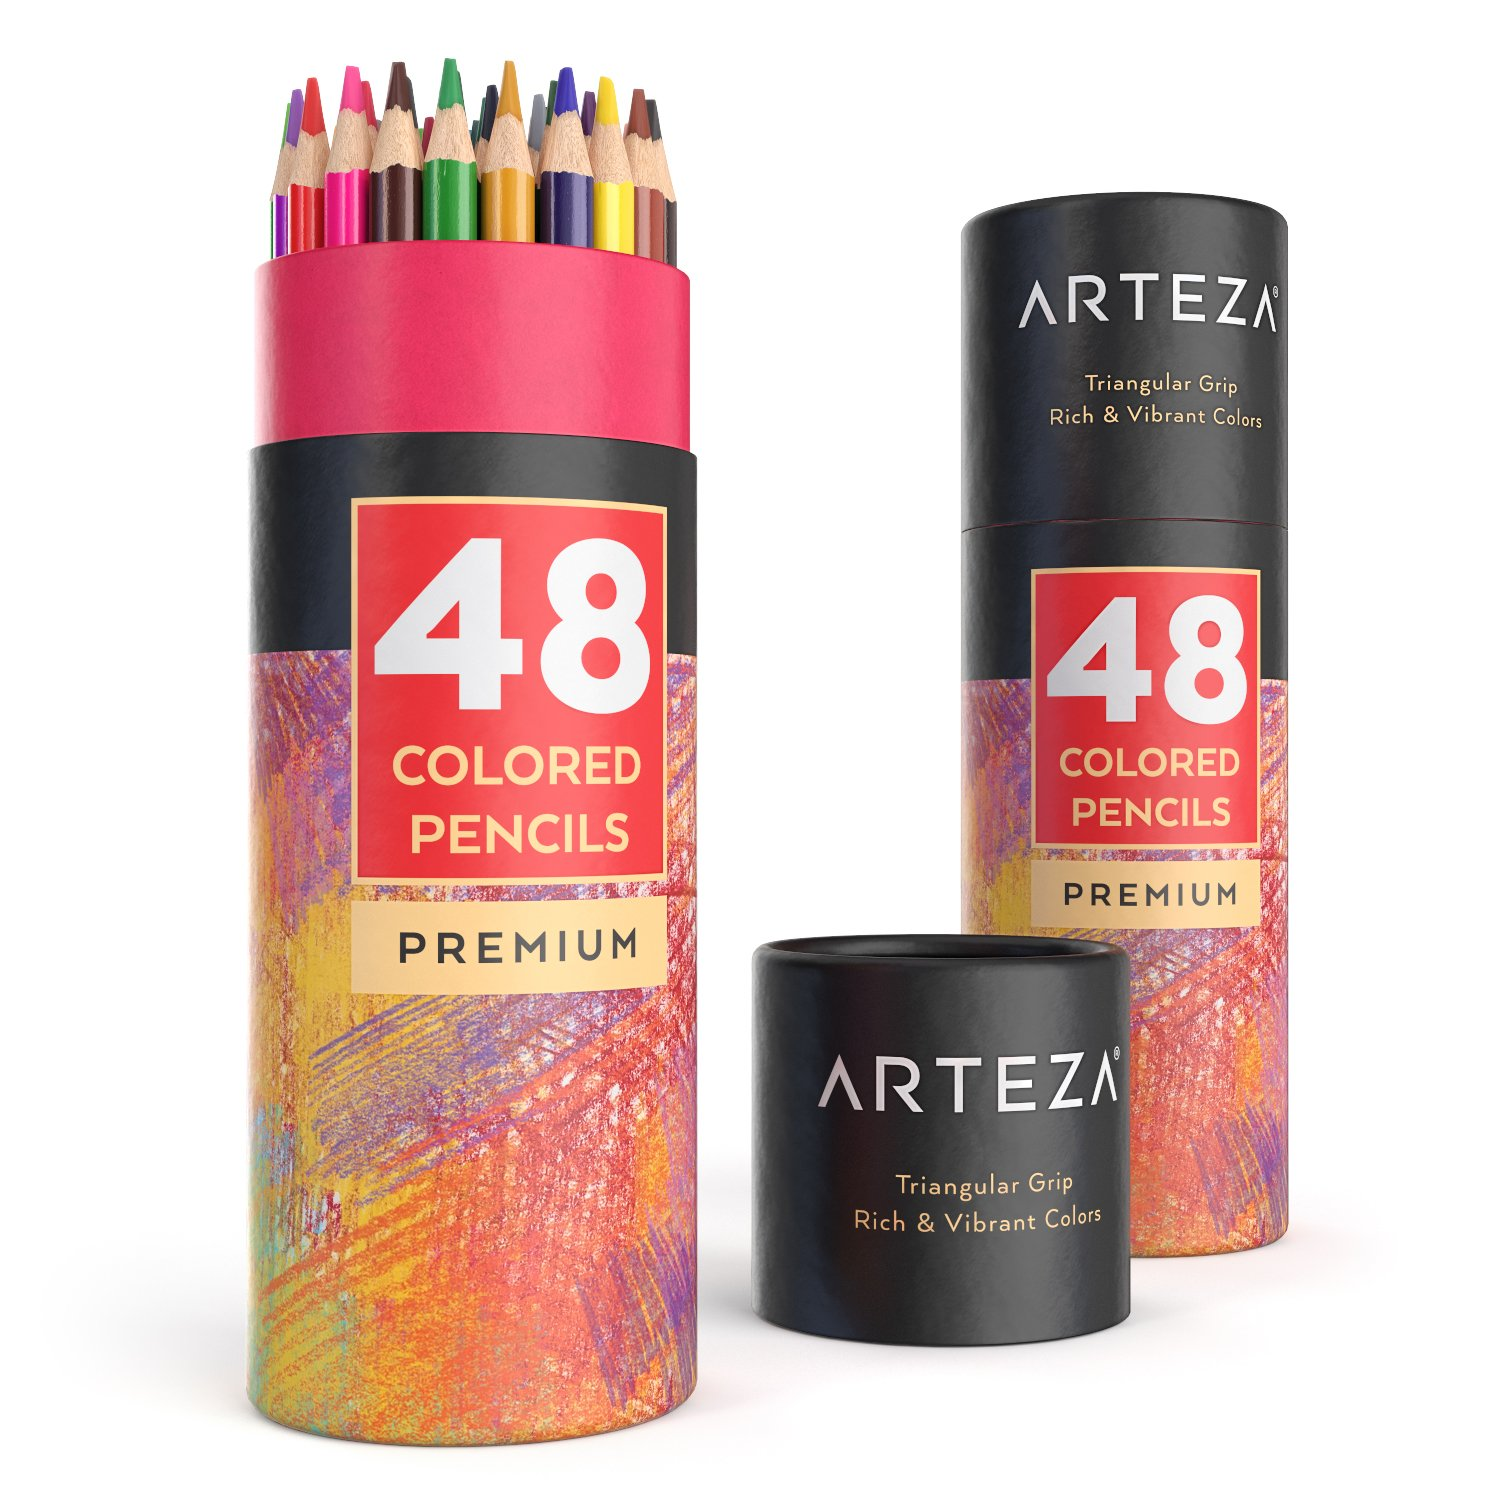 Arteza Colored Pencils with Color Names, Soft Core, Triangular shaped, Pre sharpened (Pack of 48)